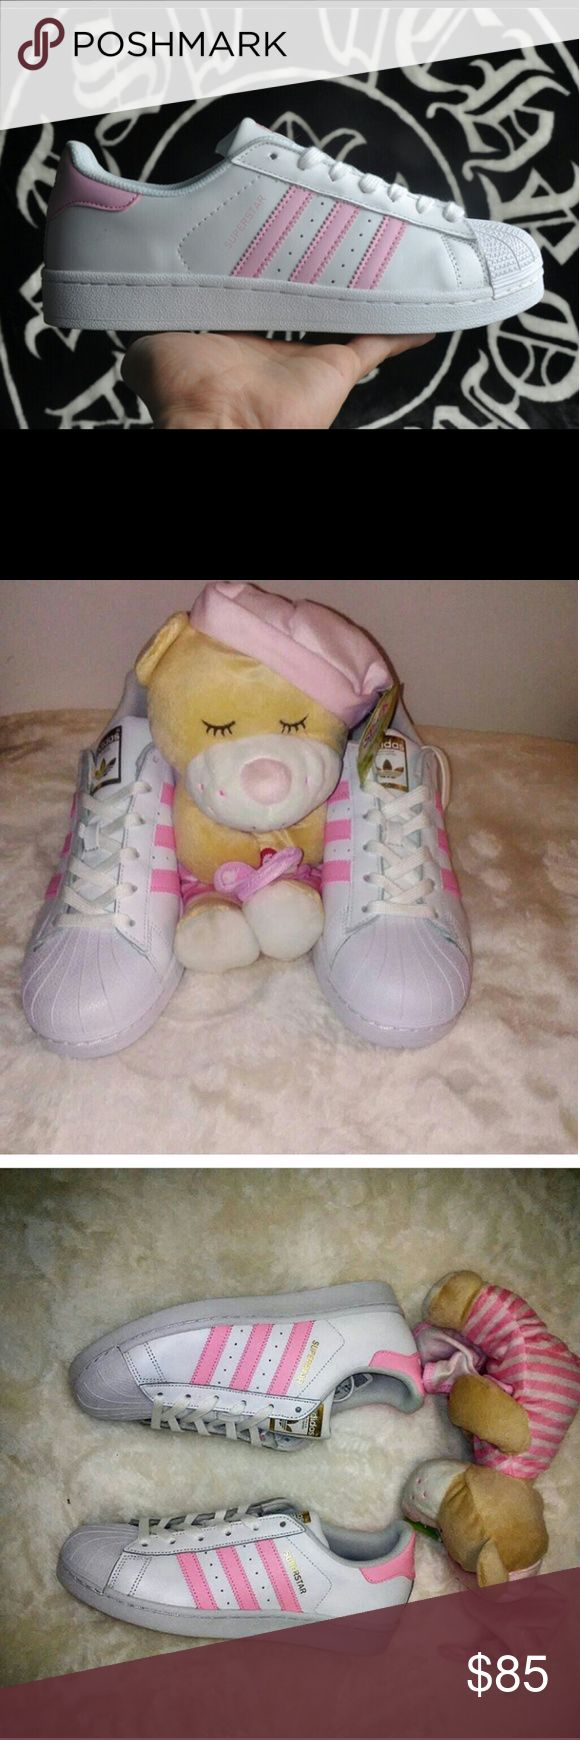 Women's Adidas Originals Superstars Prayer bear is waiting on you to keep you comfort while you boast your new Adidas. This classic sihoutte with pink stripes supports the breast cancer survivors and the march of dimes foundation. The soft pink and white color way captures the essence of the shell toe line. Smooth, elegant with a hint Of  intelligence. You can walk and sleep safe as prayer bear and the pink Adidas are waiting for you.   New in box Mint condition   Free talking prayer bear if…